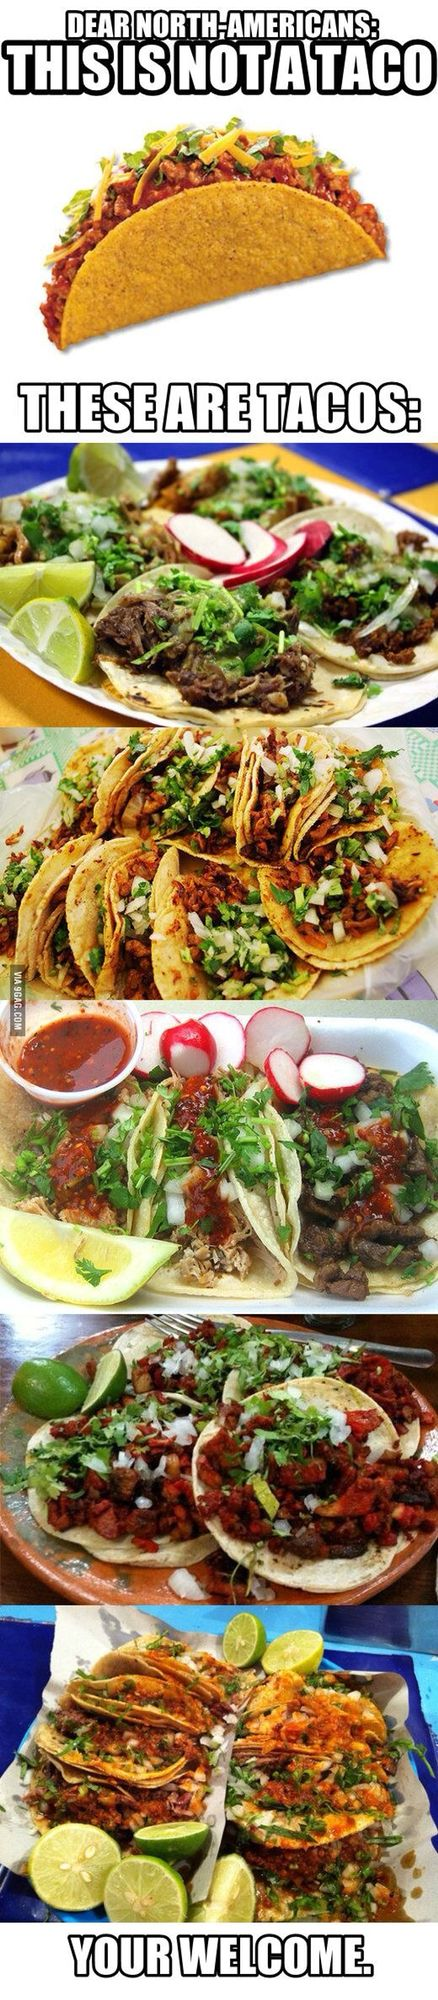 Racial Self- I am used to eating tacos due to where I am from. My grandmother sold tacos in Mexico for a living. She made me used to tacos. Tacos are life.